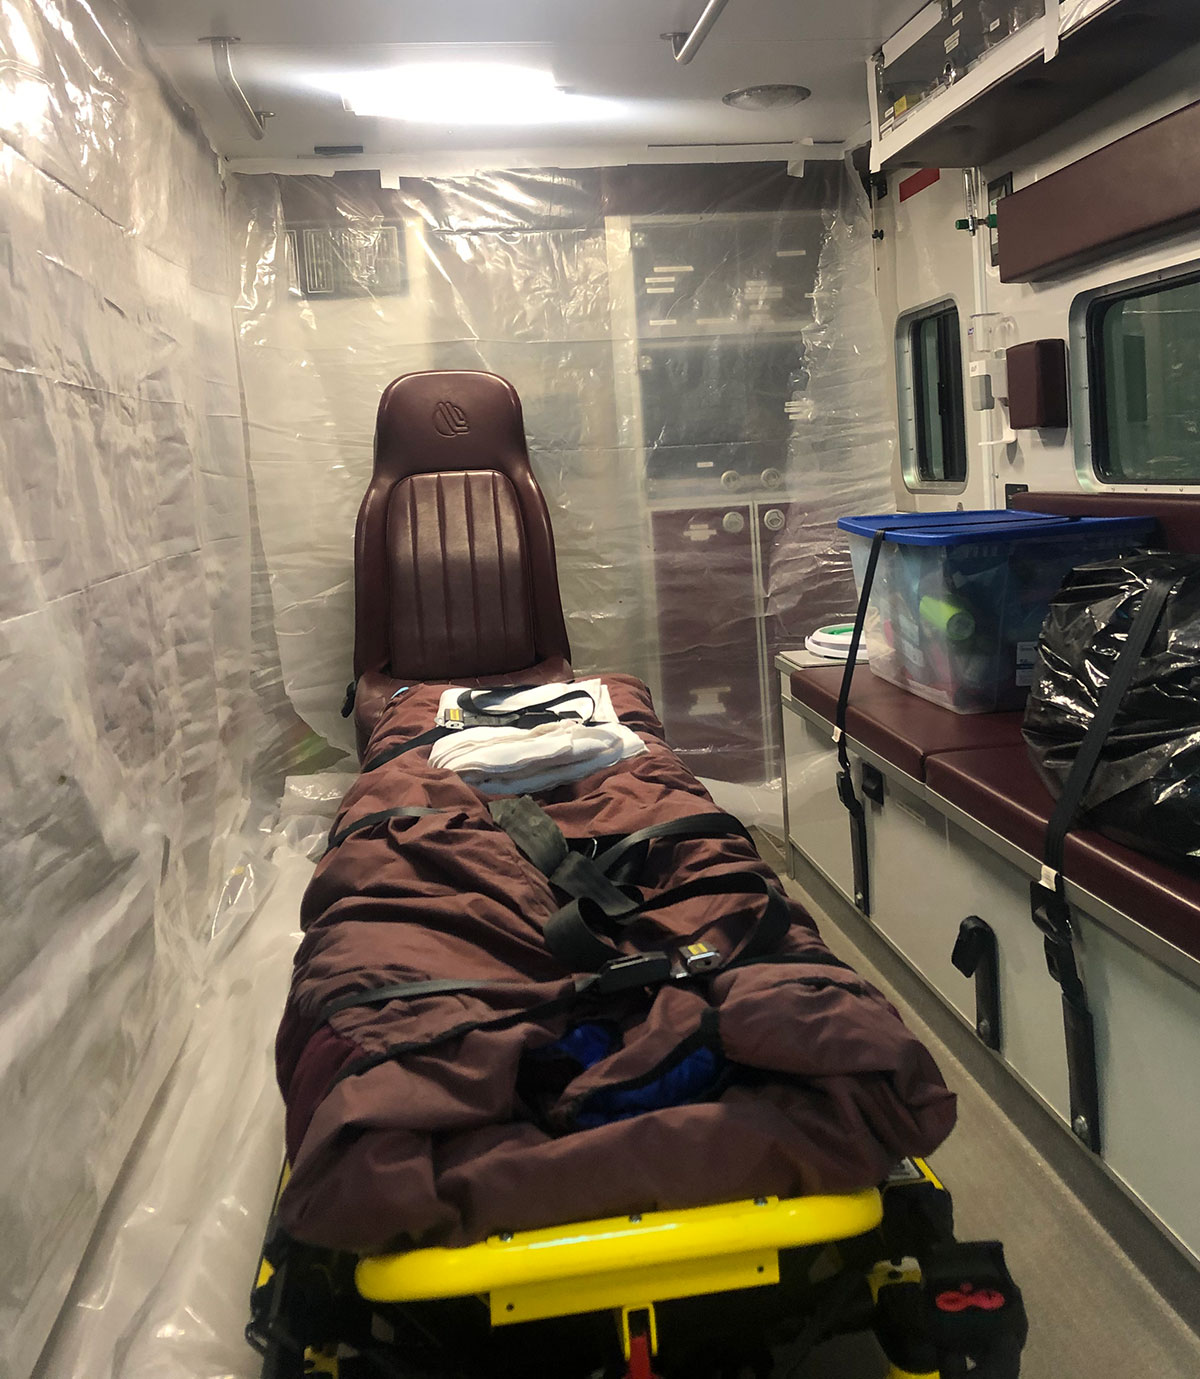 The back of an ambulance with a chair and medical cot, plastic covering the walls, a strapped down tote with supplies, and a strapped down garbage back filled with something.